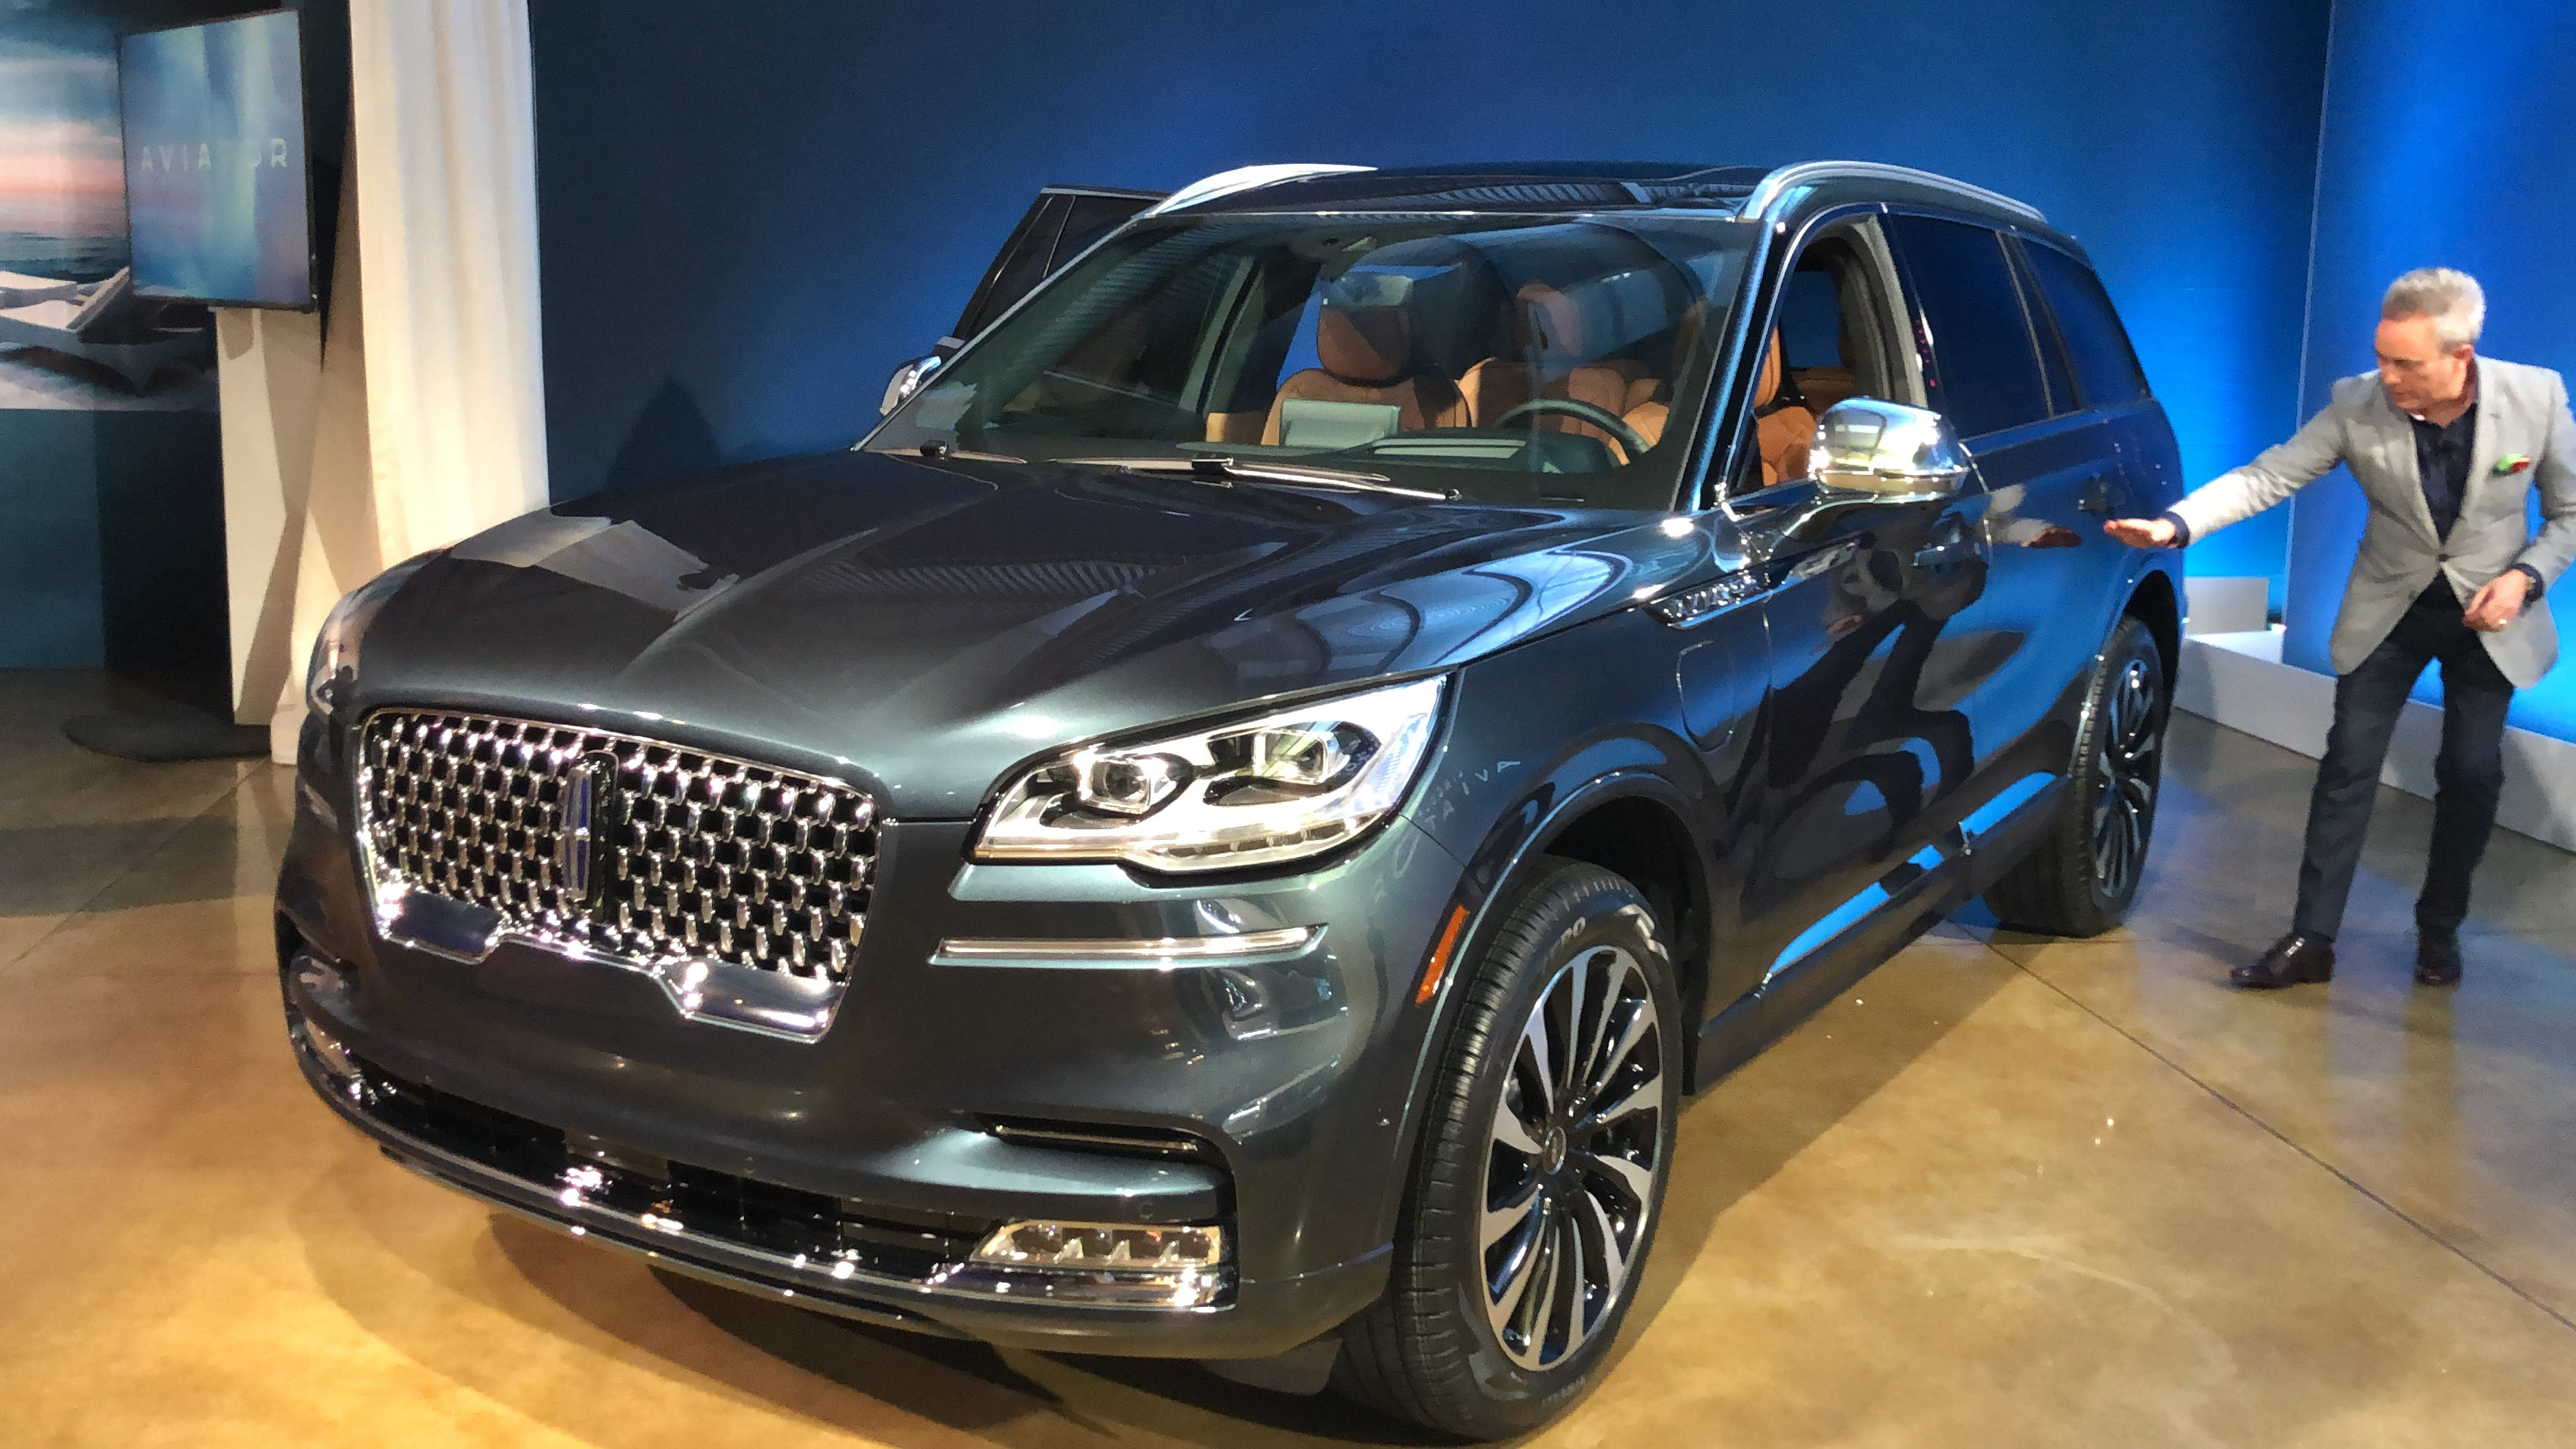 An iPhone all you need to start, drive this SUV